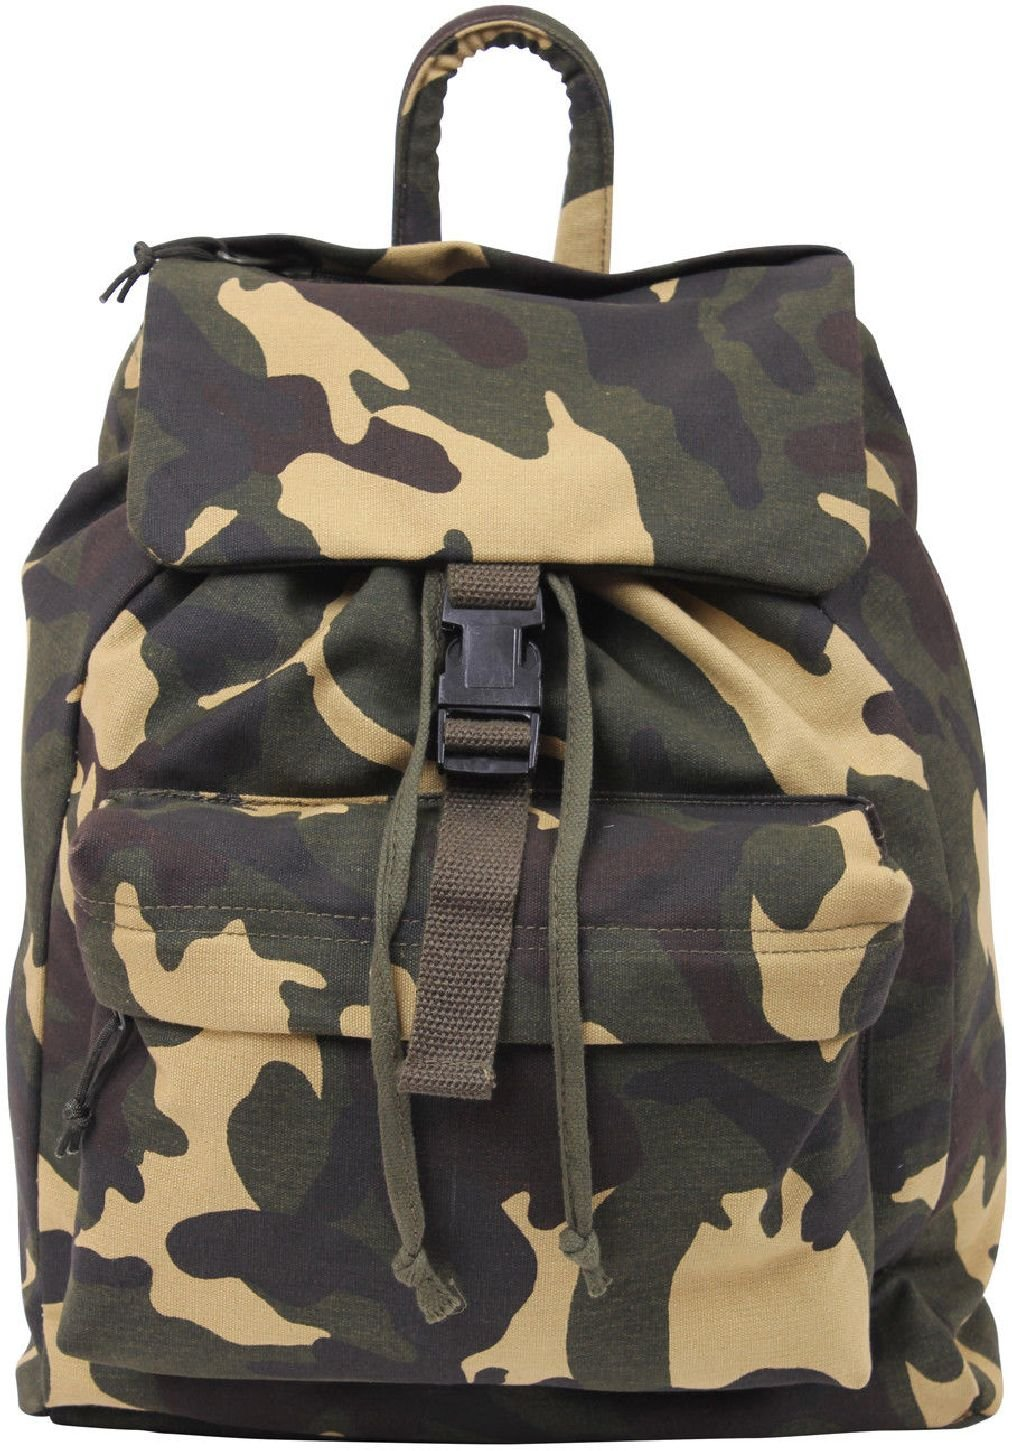 Heavy Canvas MilitaryバックパックDay Packナップサック迷彩リュックサックArmyバッグ  Woodland Camouflage B07DG4SJ7C